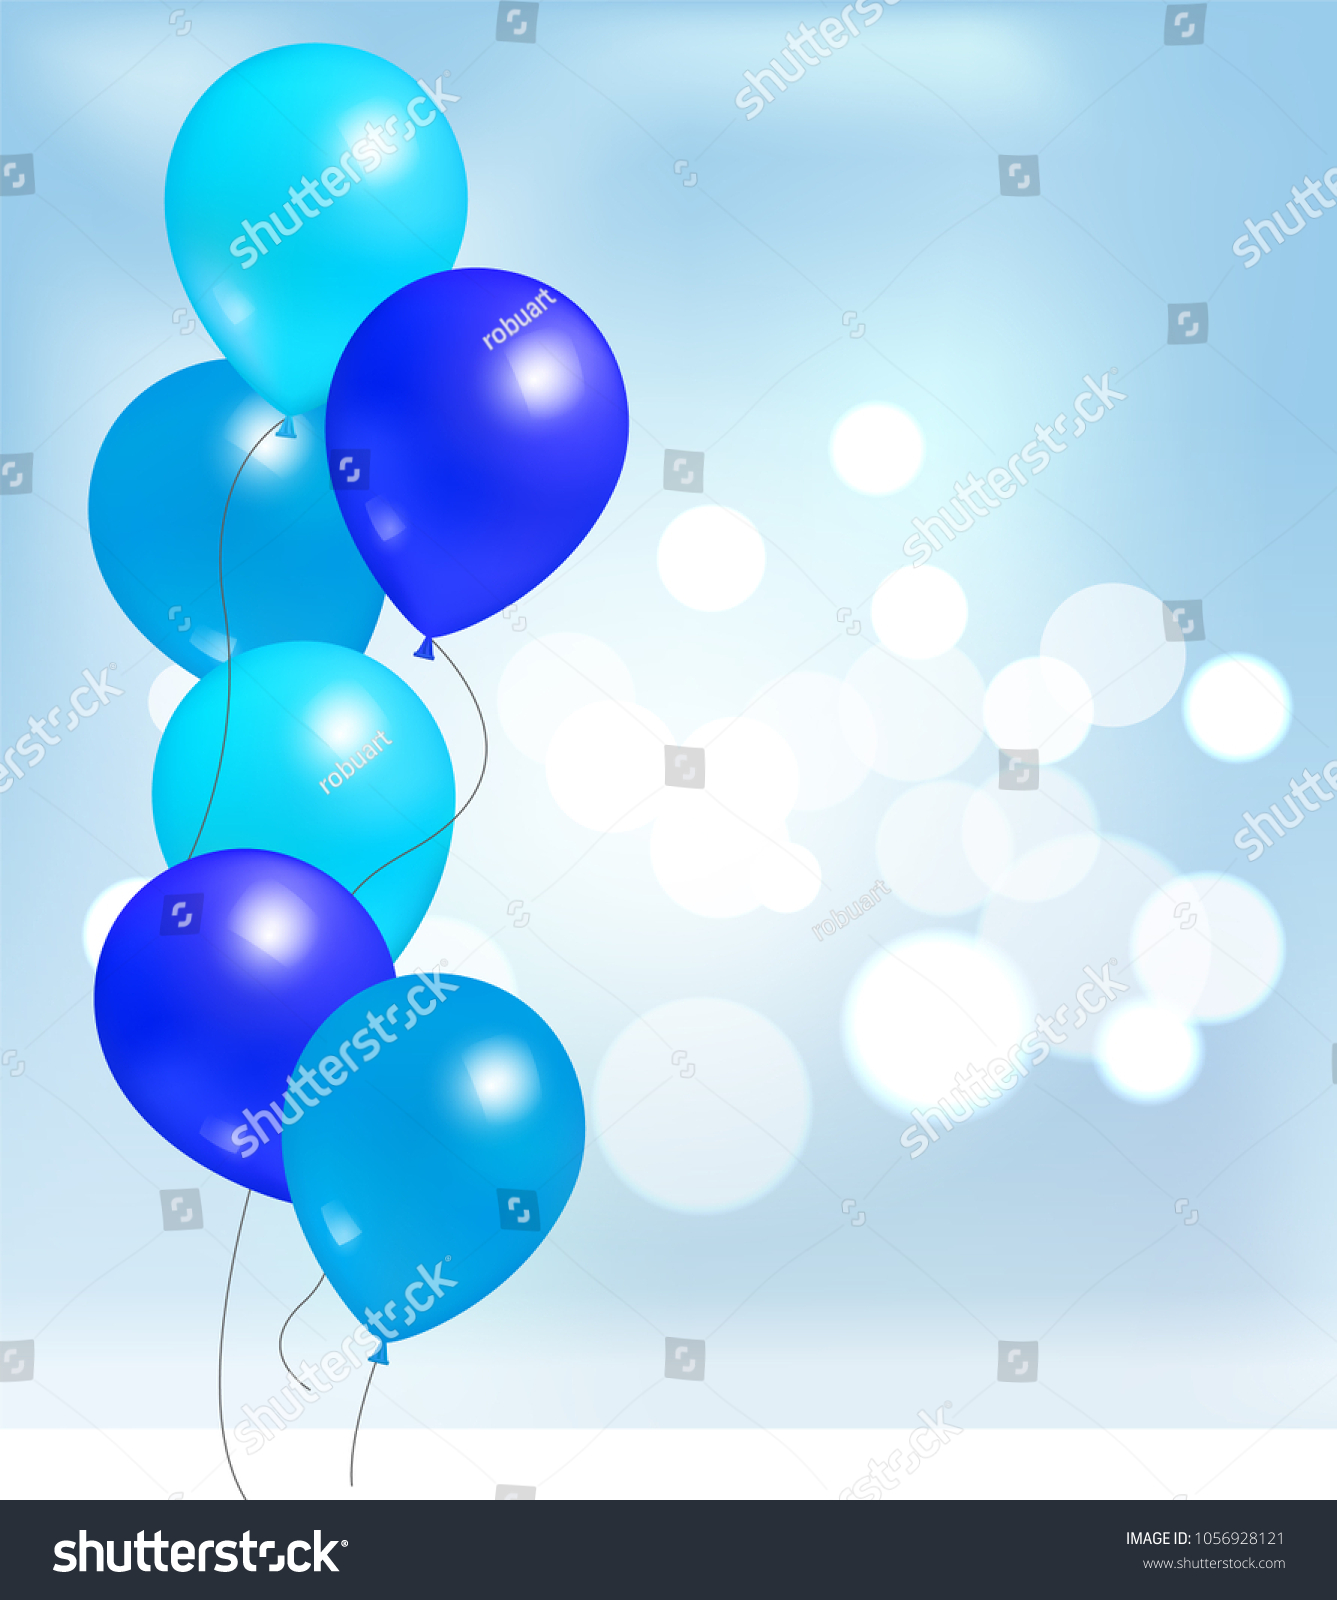 Balloons For Party Decorations Birthdays And Anniversaries Rubber Balloon Of Blue Color In Inflatable